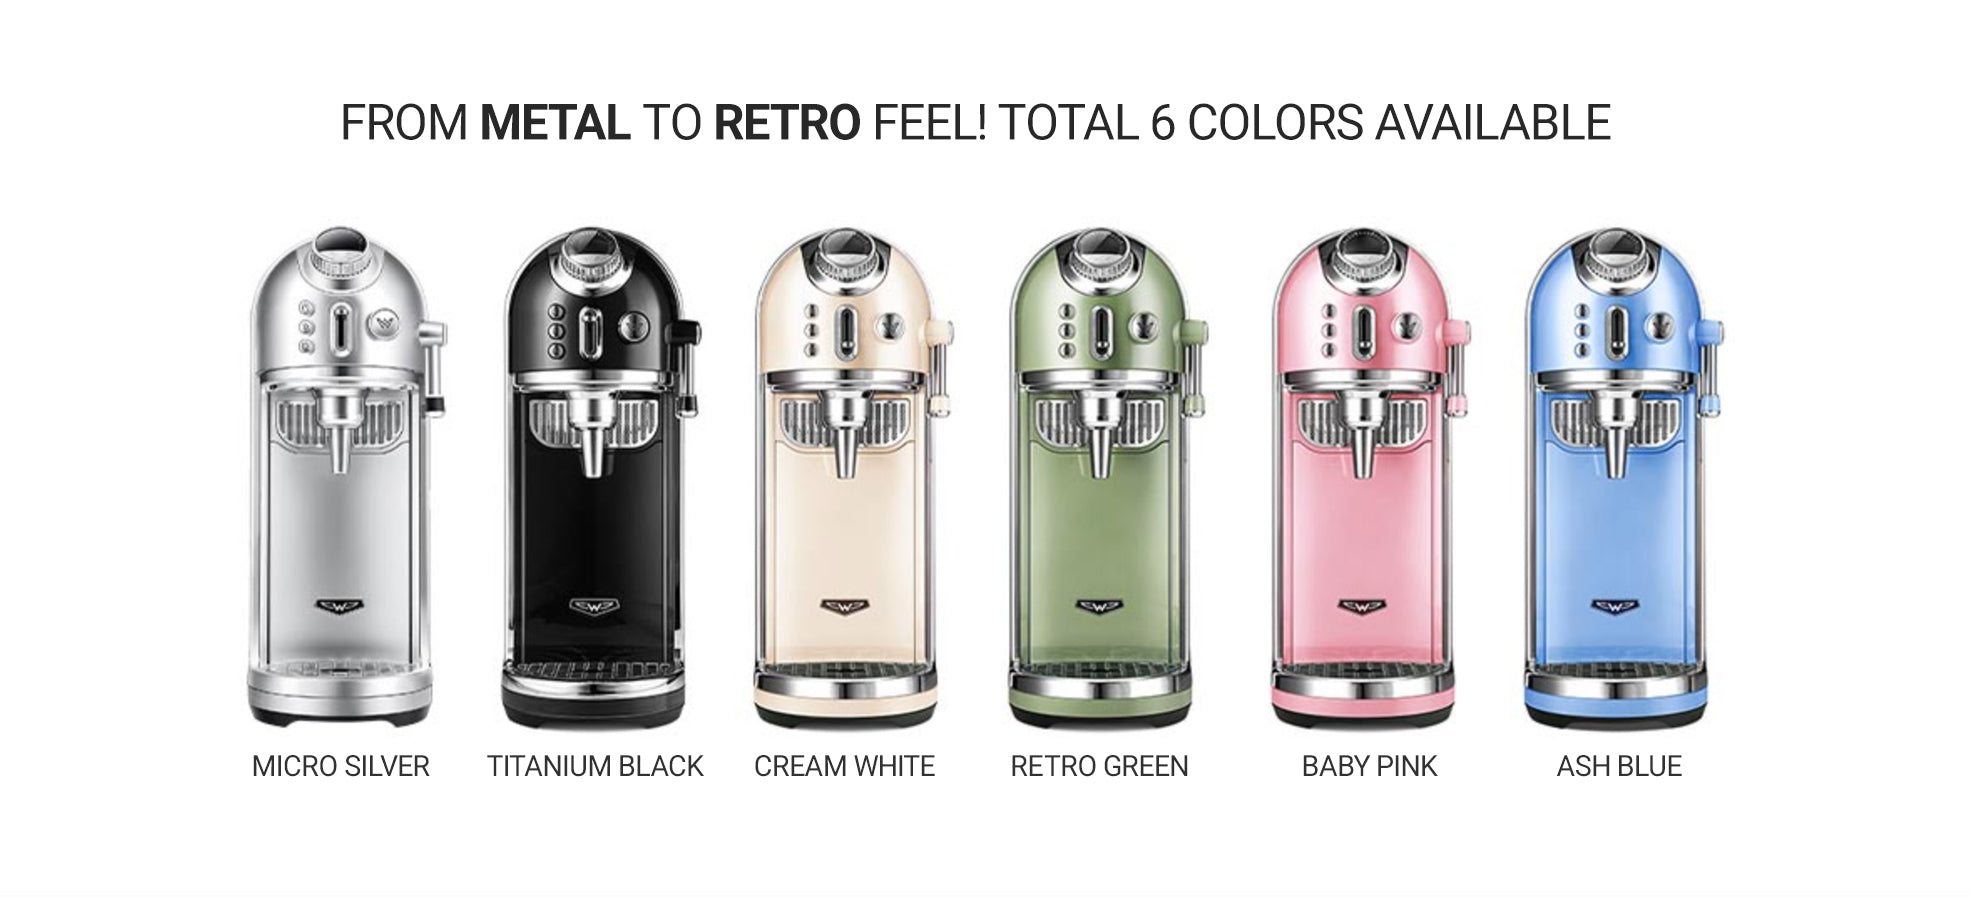 From Metal to retro Feel, Total 6 Colors Available